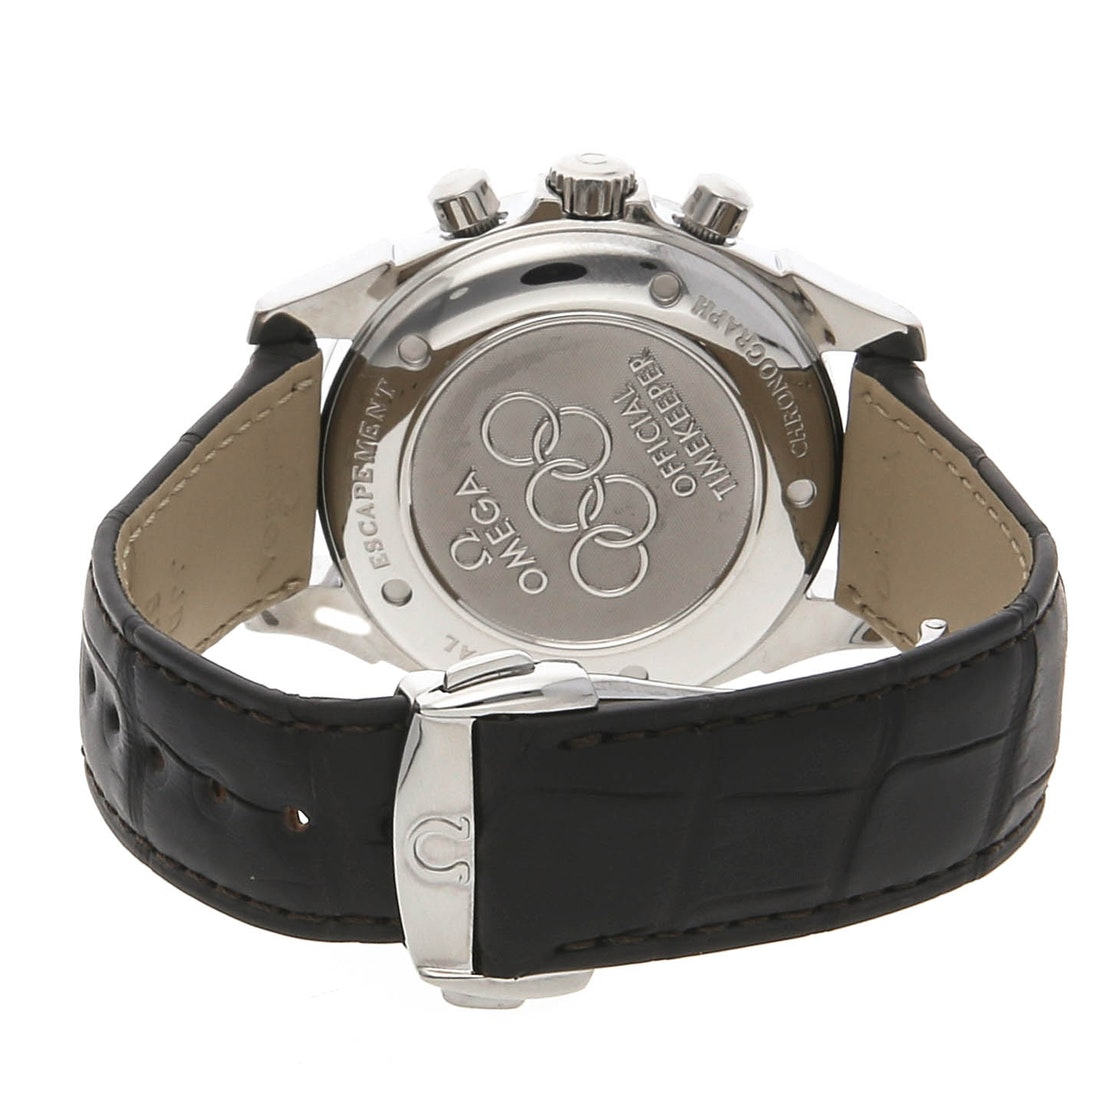 Omega Specialties Olympic Chronograph 4846.20.32